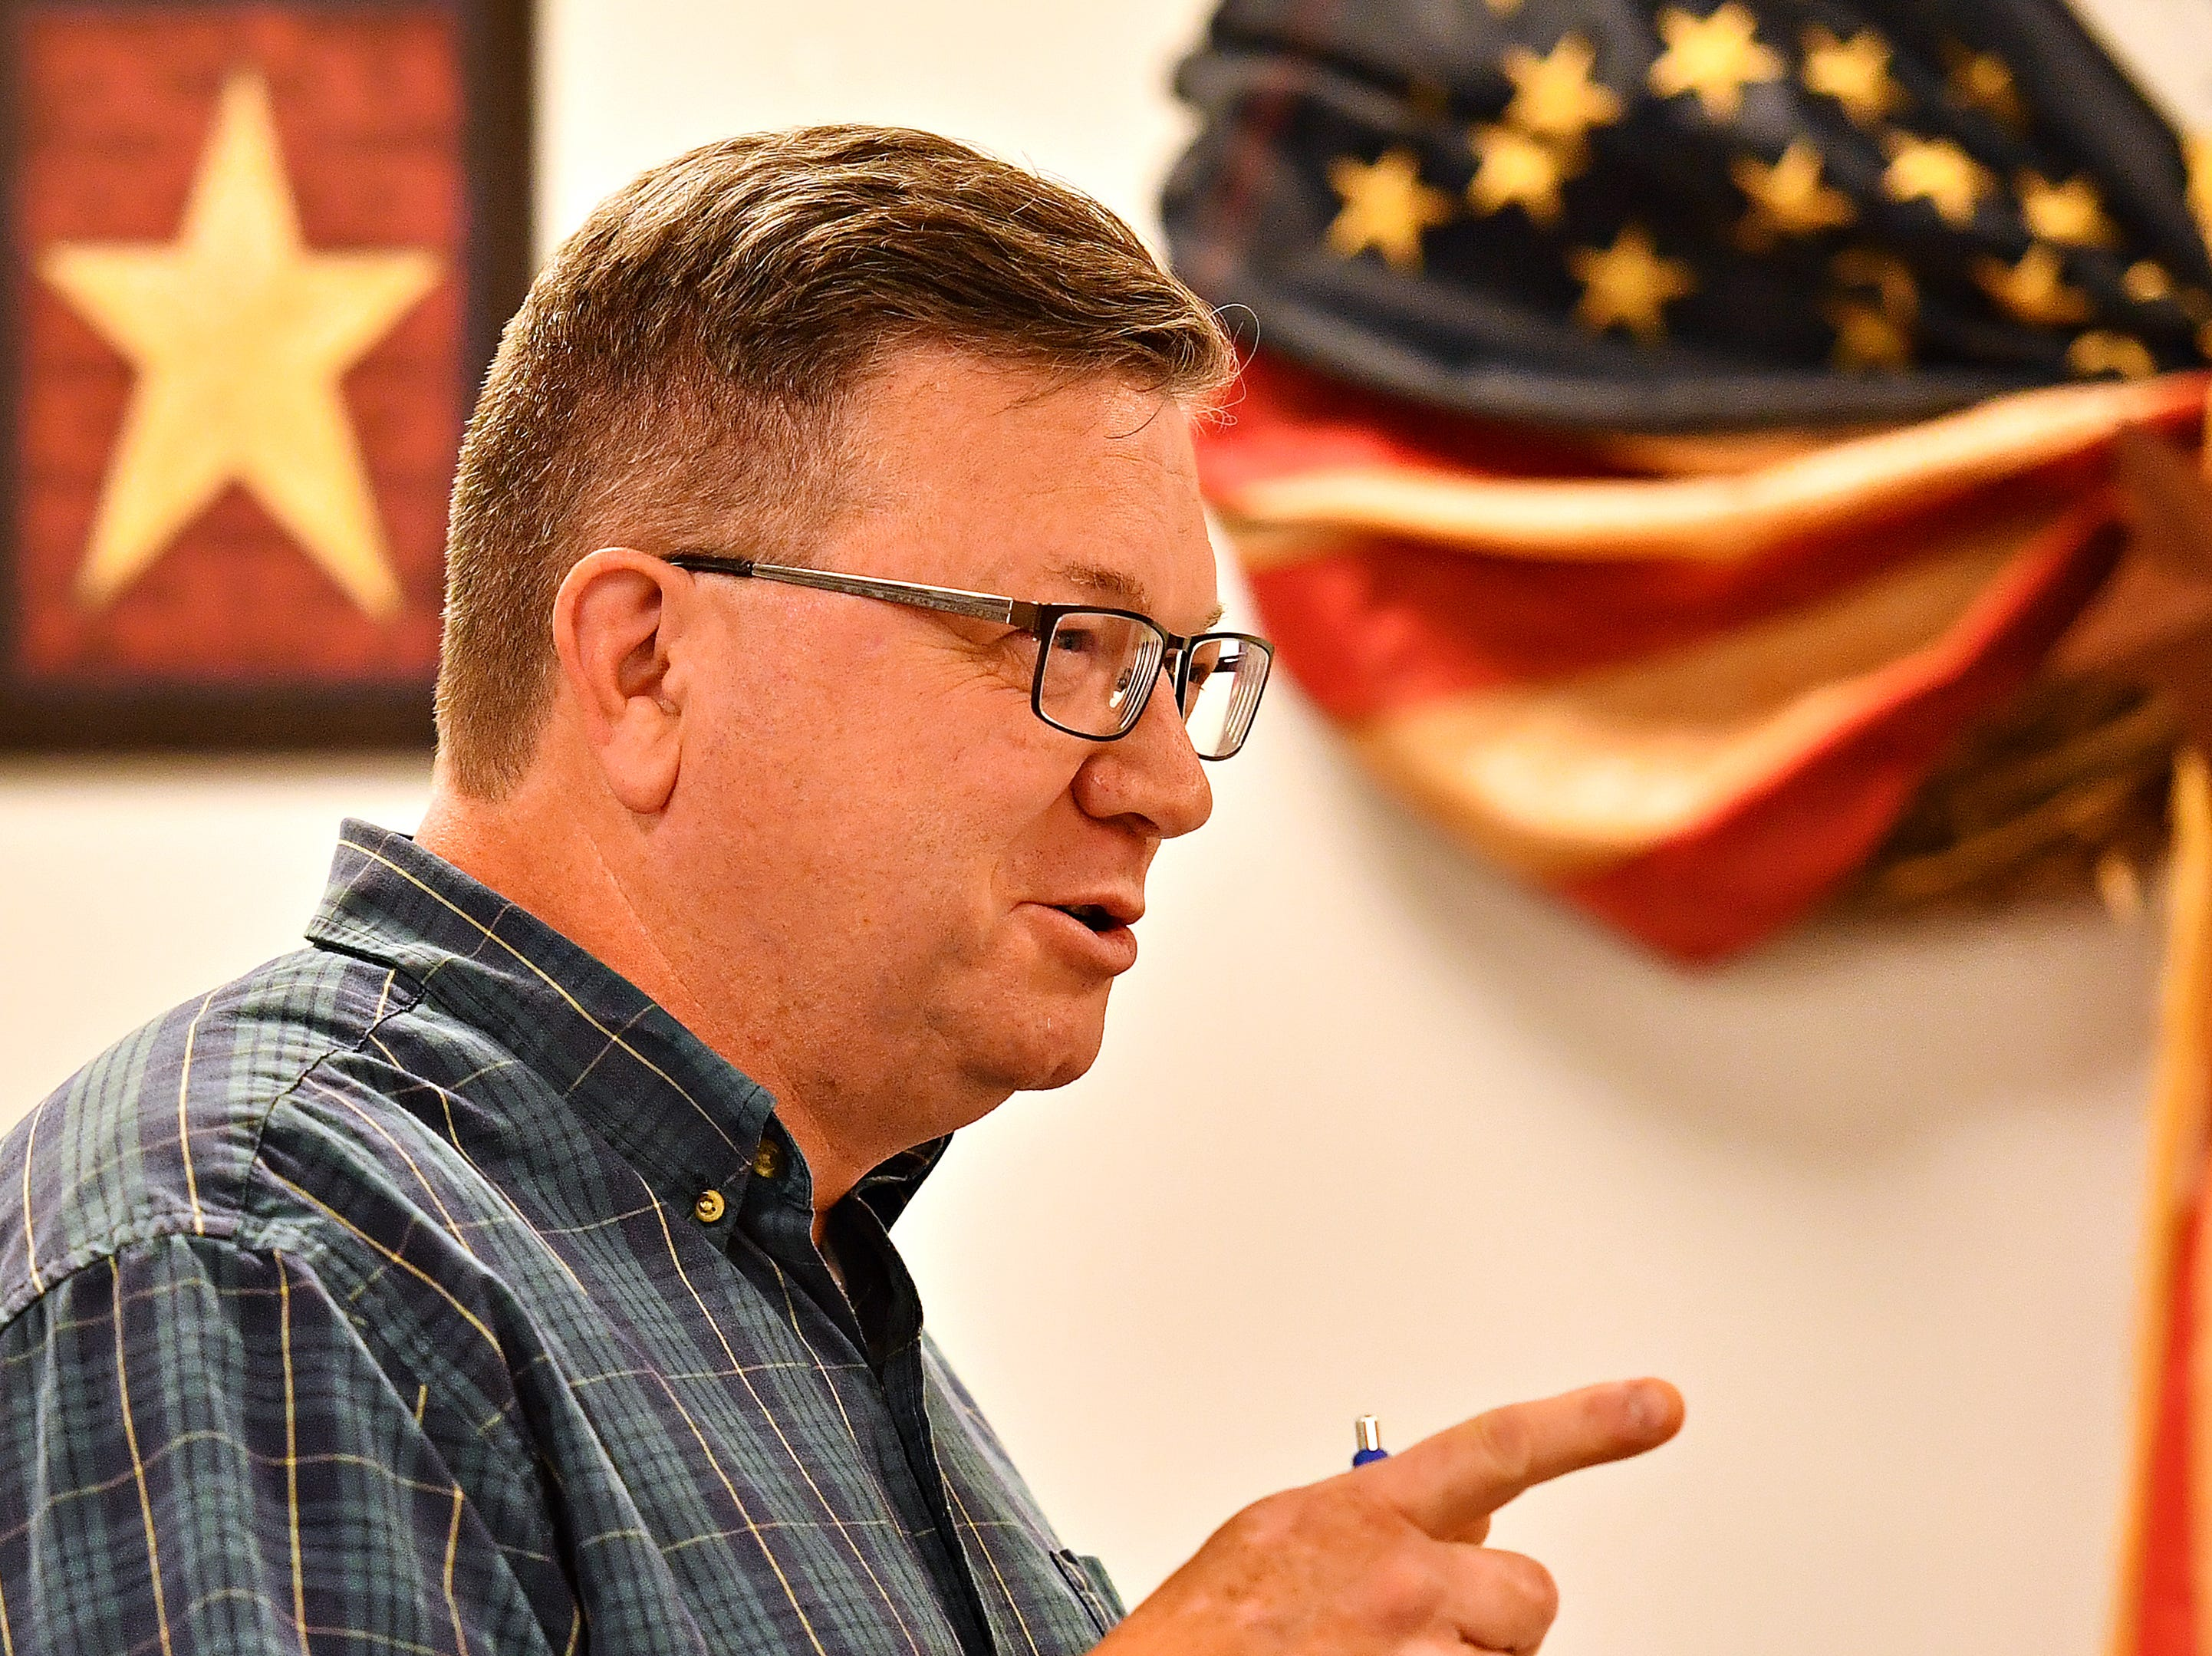 Todd Zeigler, of North Codorus Township, speaks during public comment at the Southwestern Regional Police Department's monthly board meeting at the station in Heidelberg Township, Wednesday, April 10, 2019. Dawn J. Sagert photo